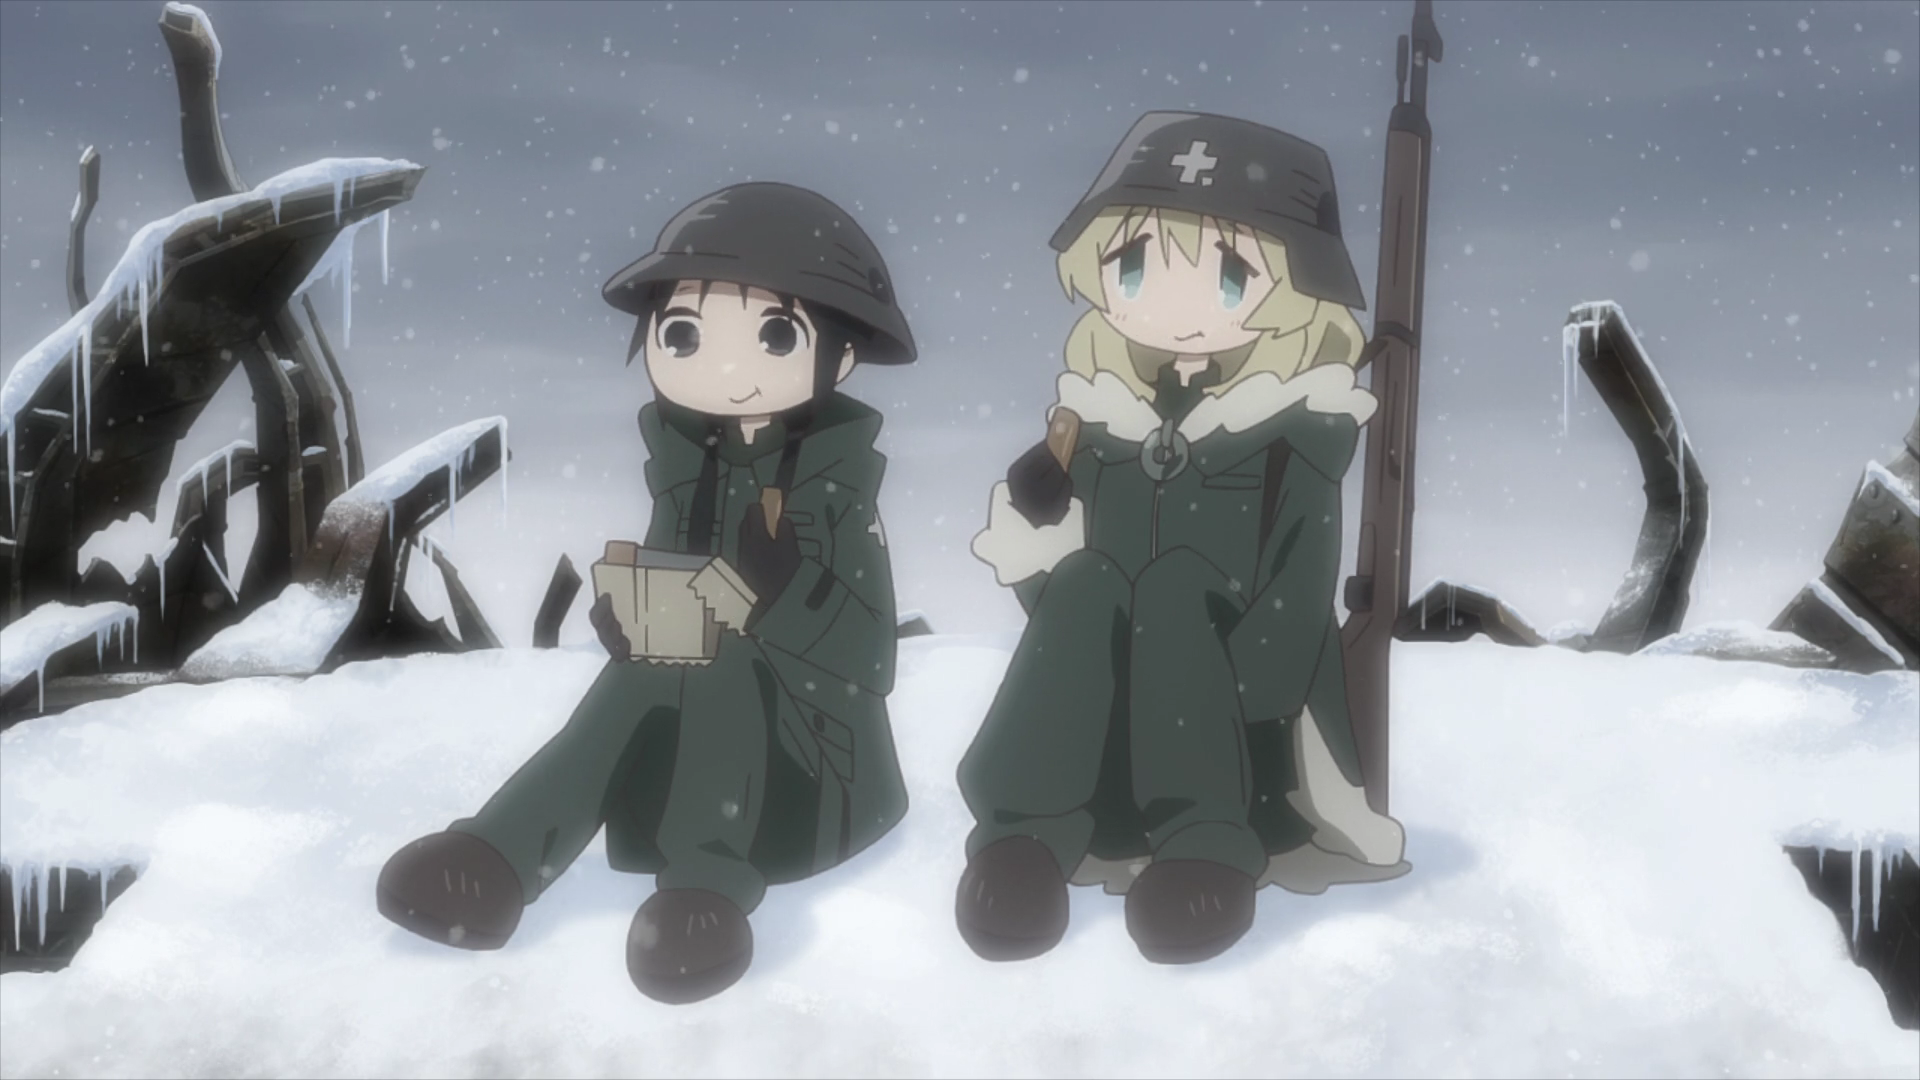 Chii-chan and Yuu enjoy a meal of chocolate-flavored ration bars in a snowy scene from the Girls' Last Tour TV anime.